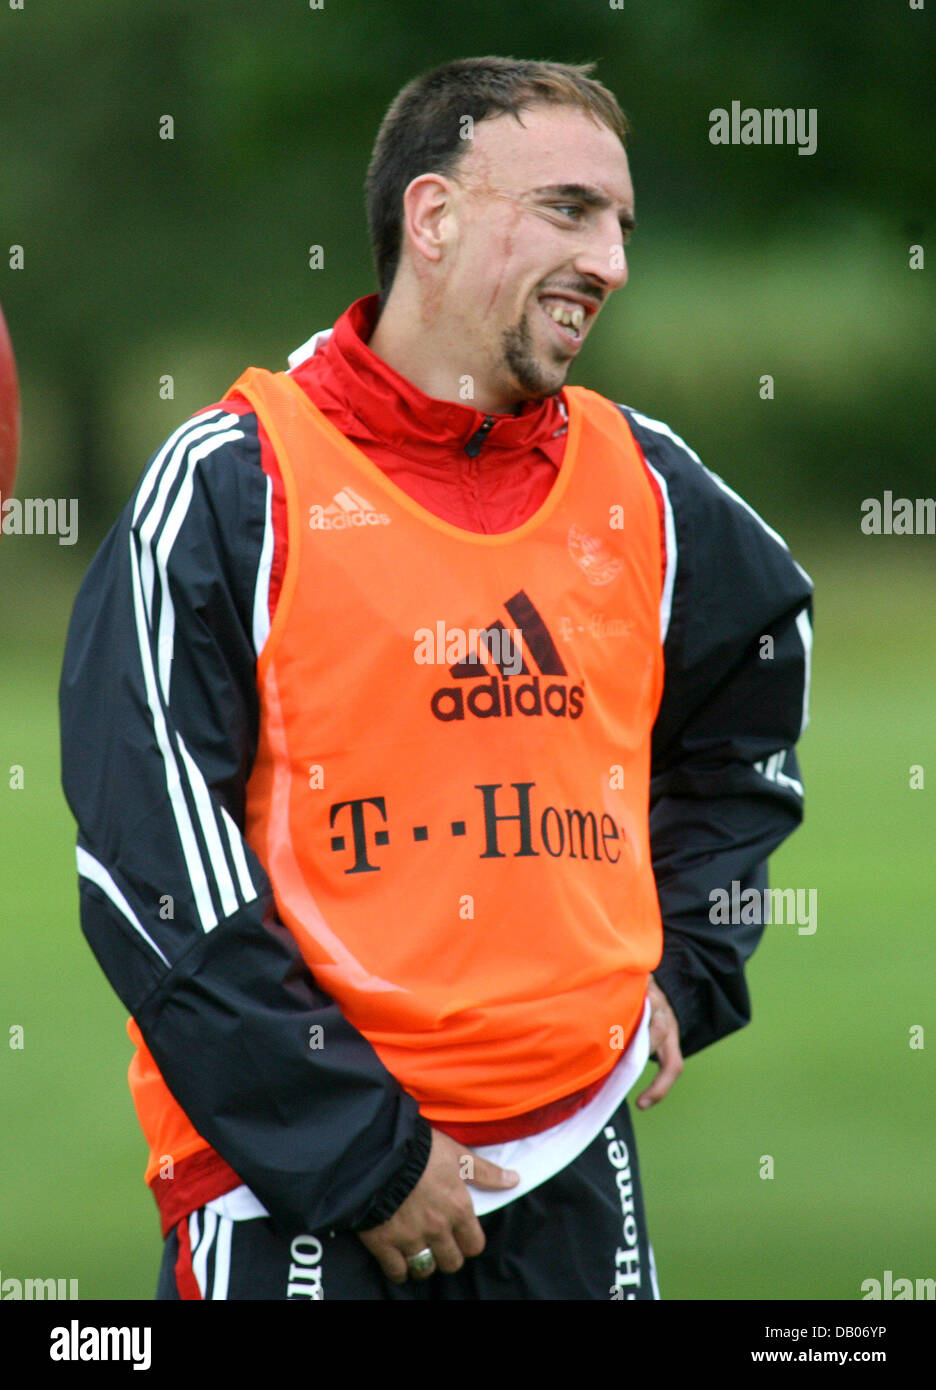 French Bayern Munich player Franck Ribery smiles during the